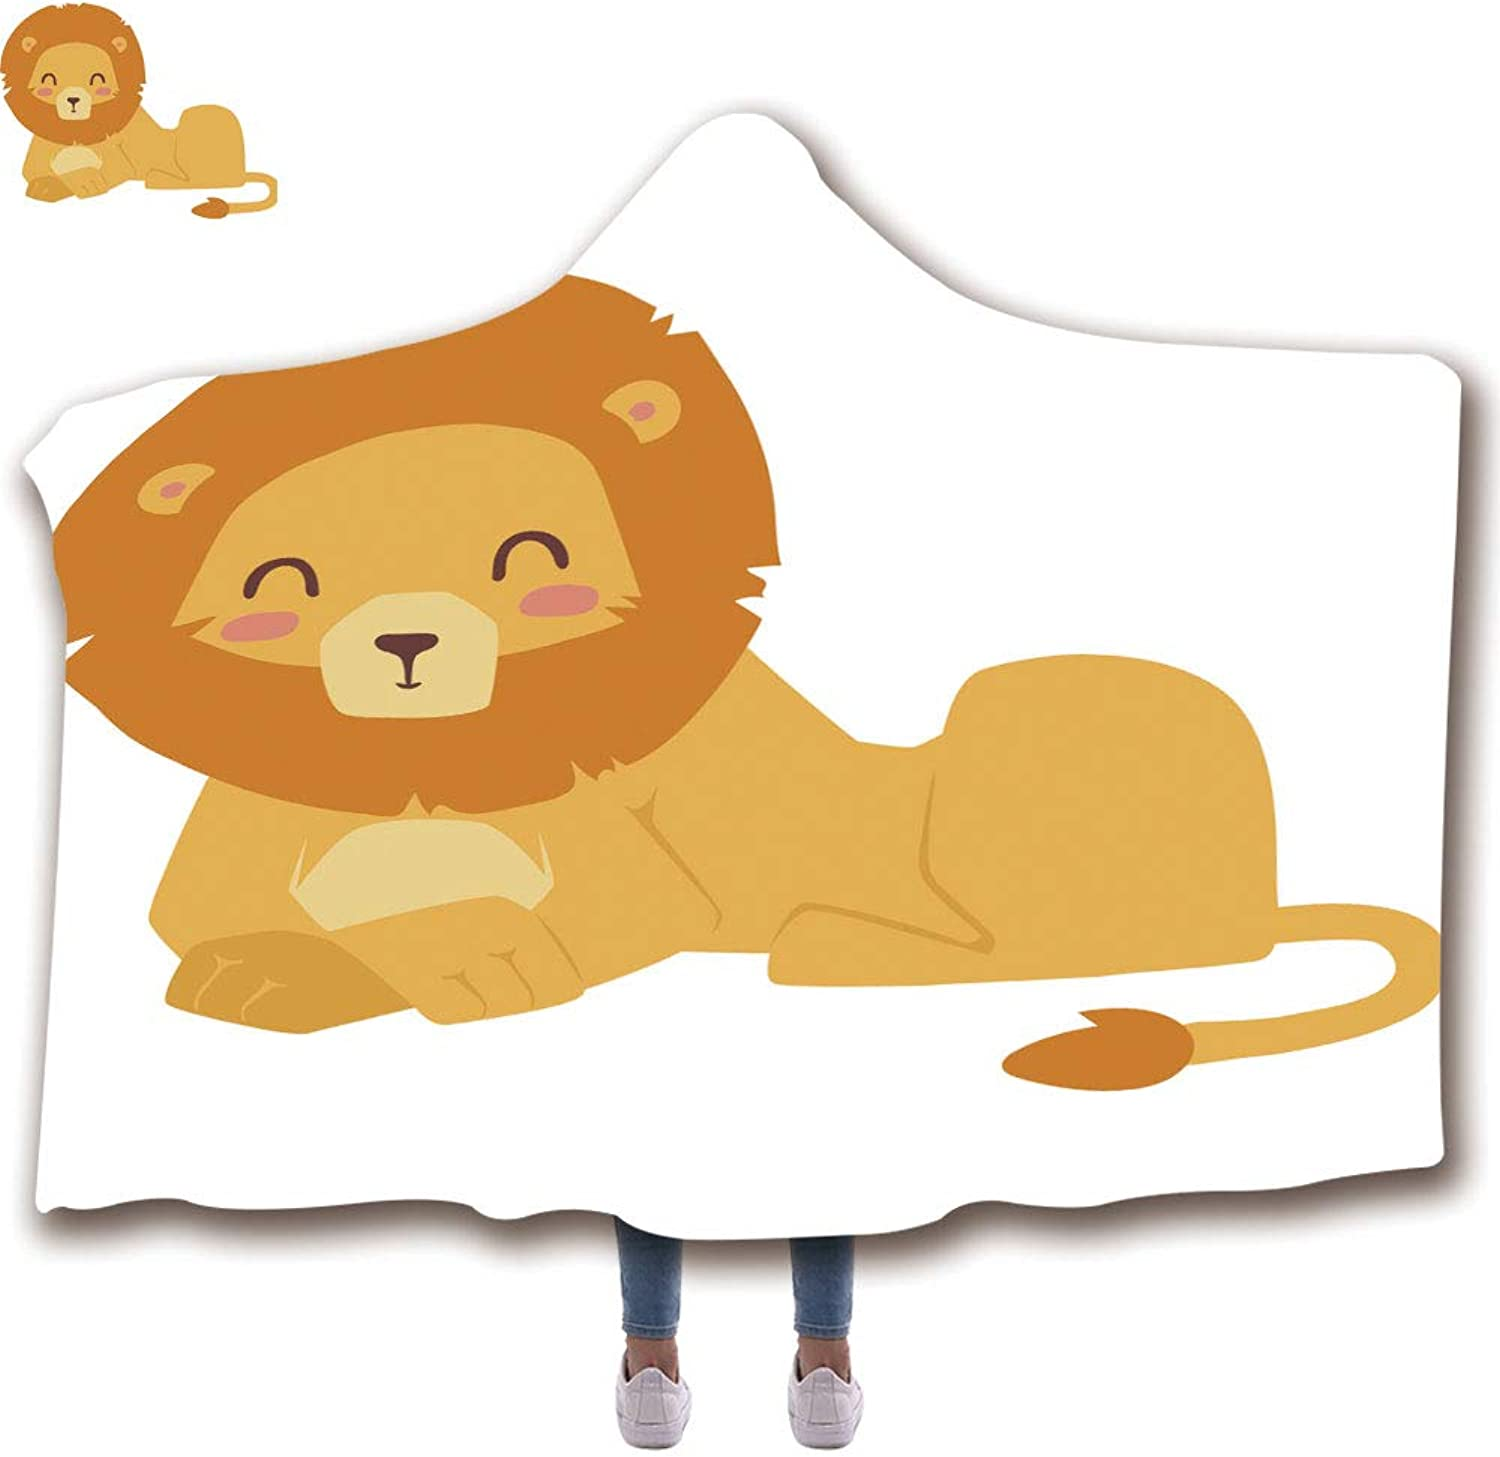 Hooded Blanket for Adults (59  H x 79  W) Wearable Portable Warm Thicken Soft Plush 3D Printed Pattern Throw Hooded Blanket, Cute Lion Cartoon Vector Illustration